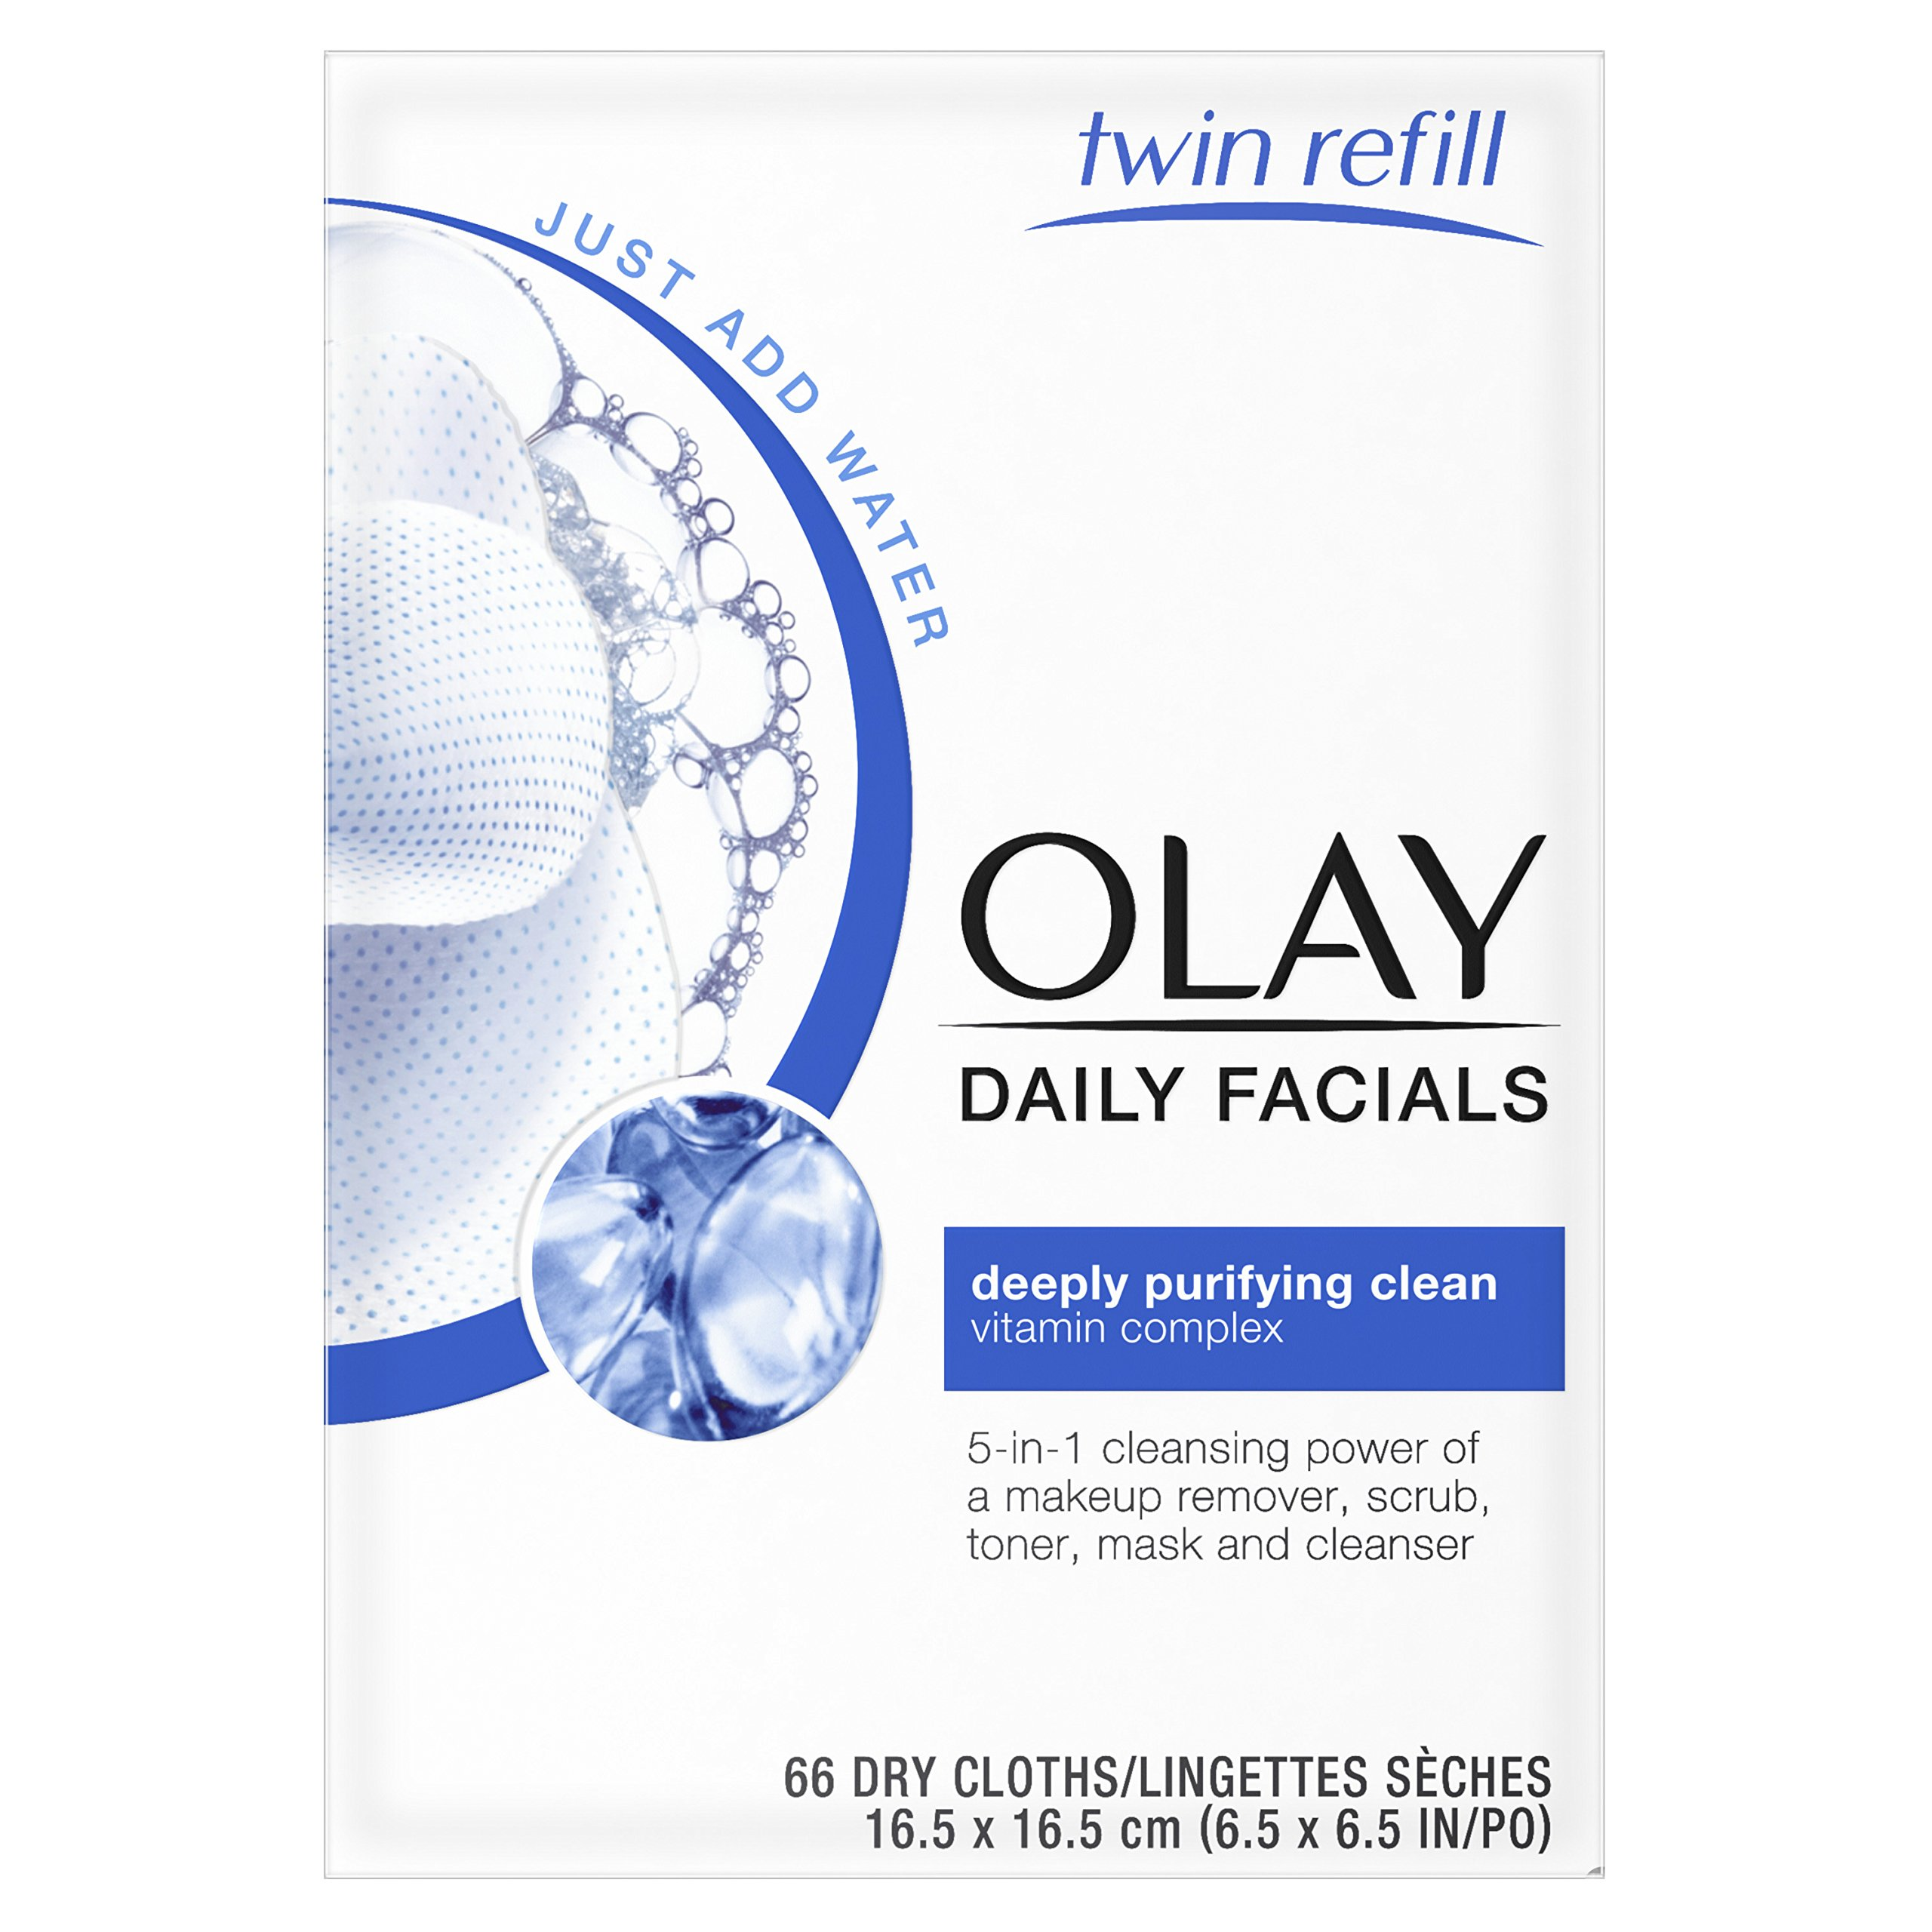 Olay Daily Facials, deeply purifying clean & 5-in-1 Cleansing power of a makeup remover, scrub, toner, mask and cleanser 66 Dry Cloths by Olay